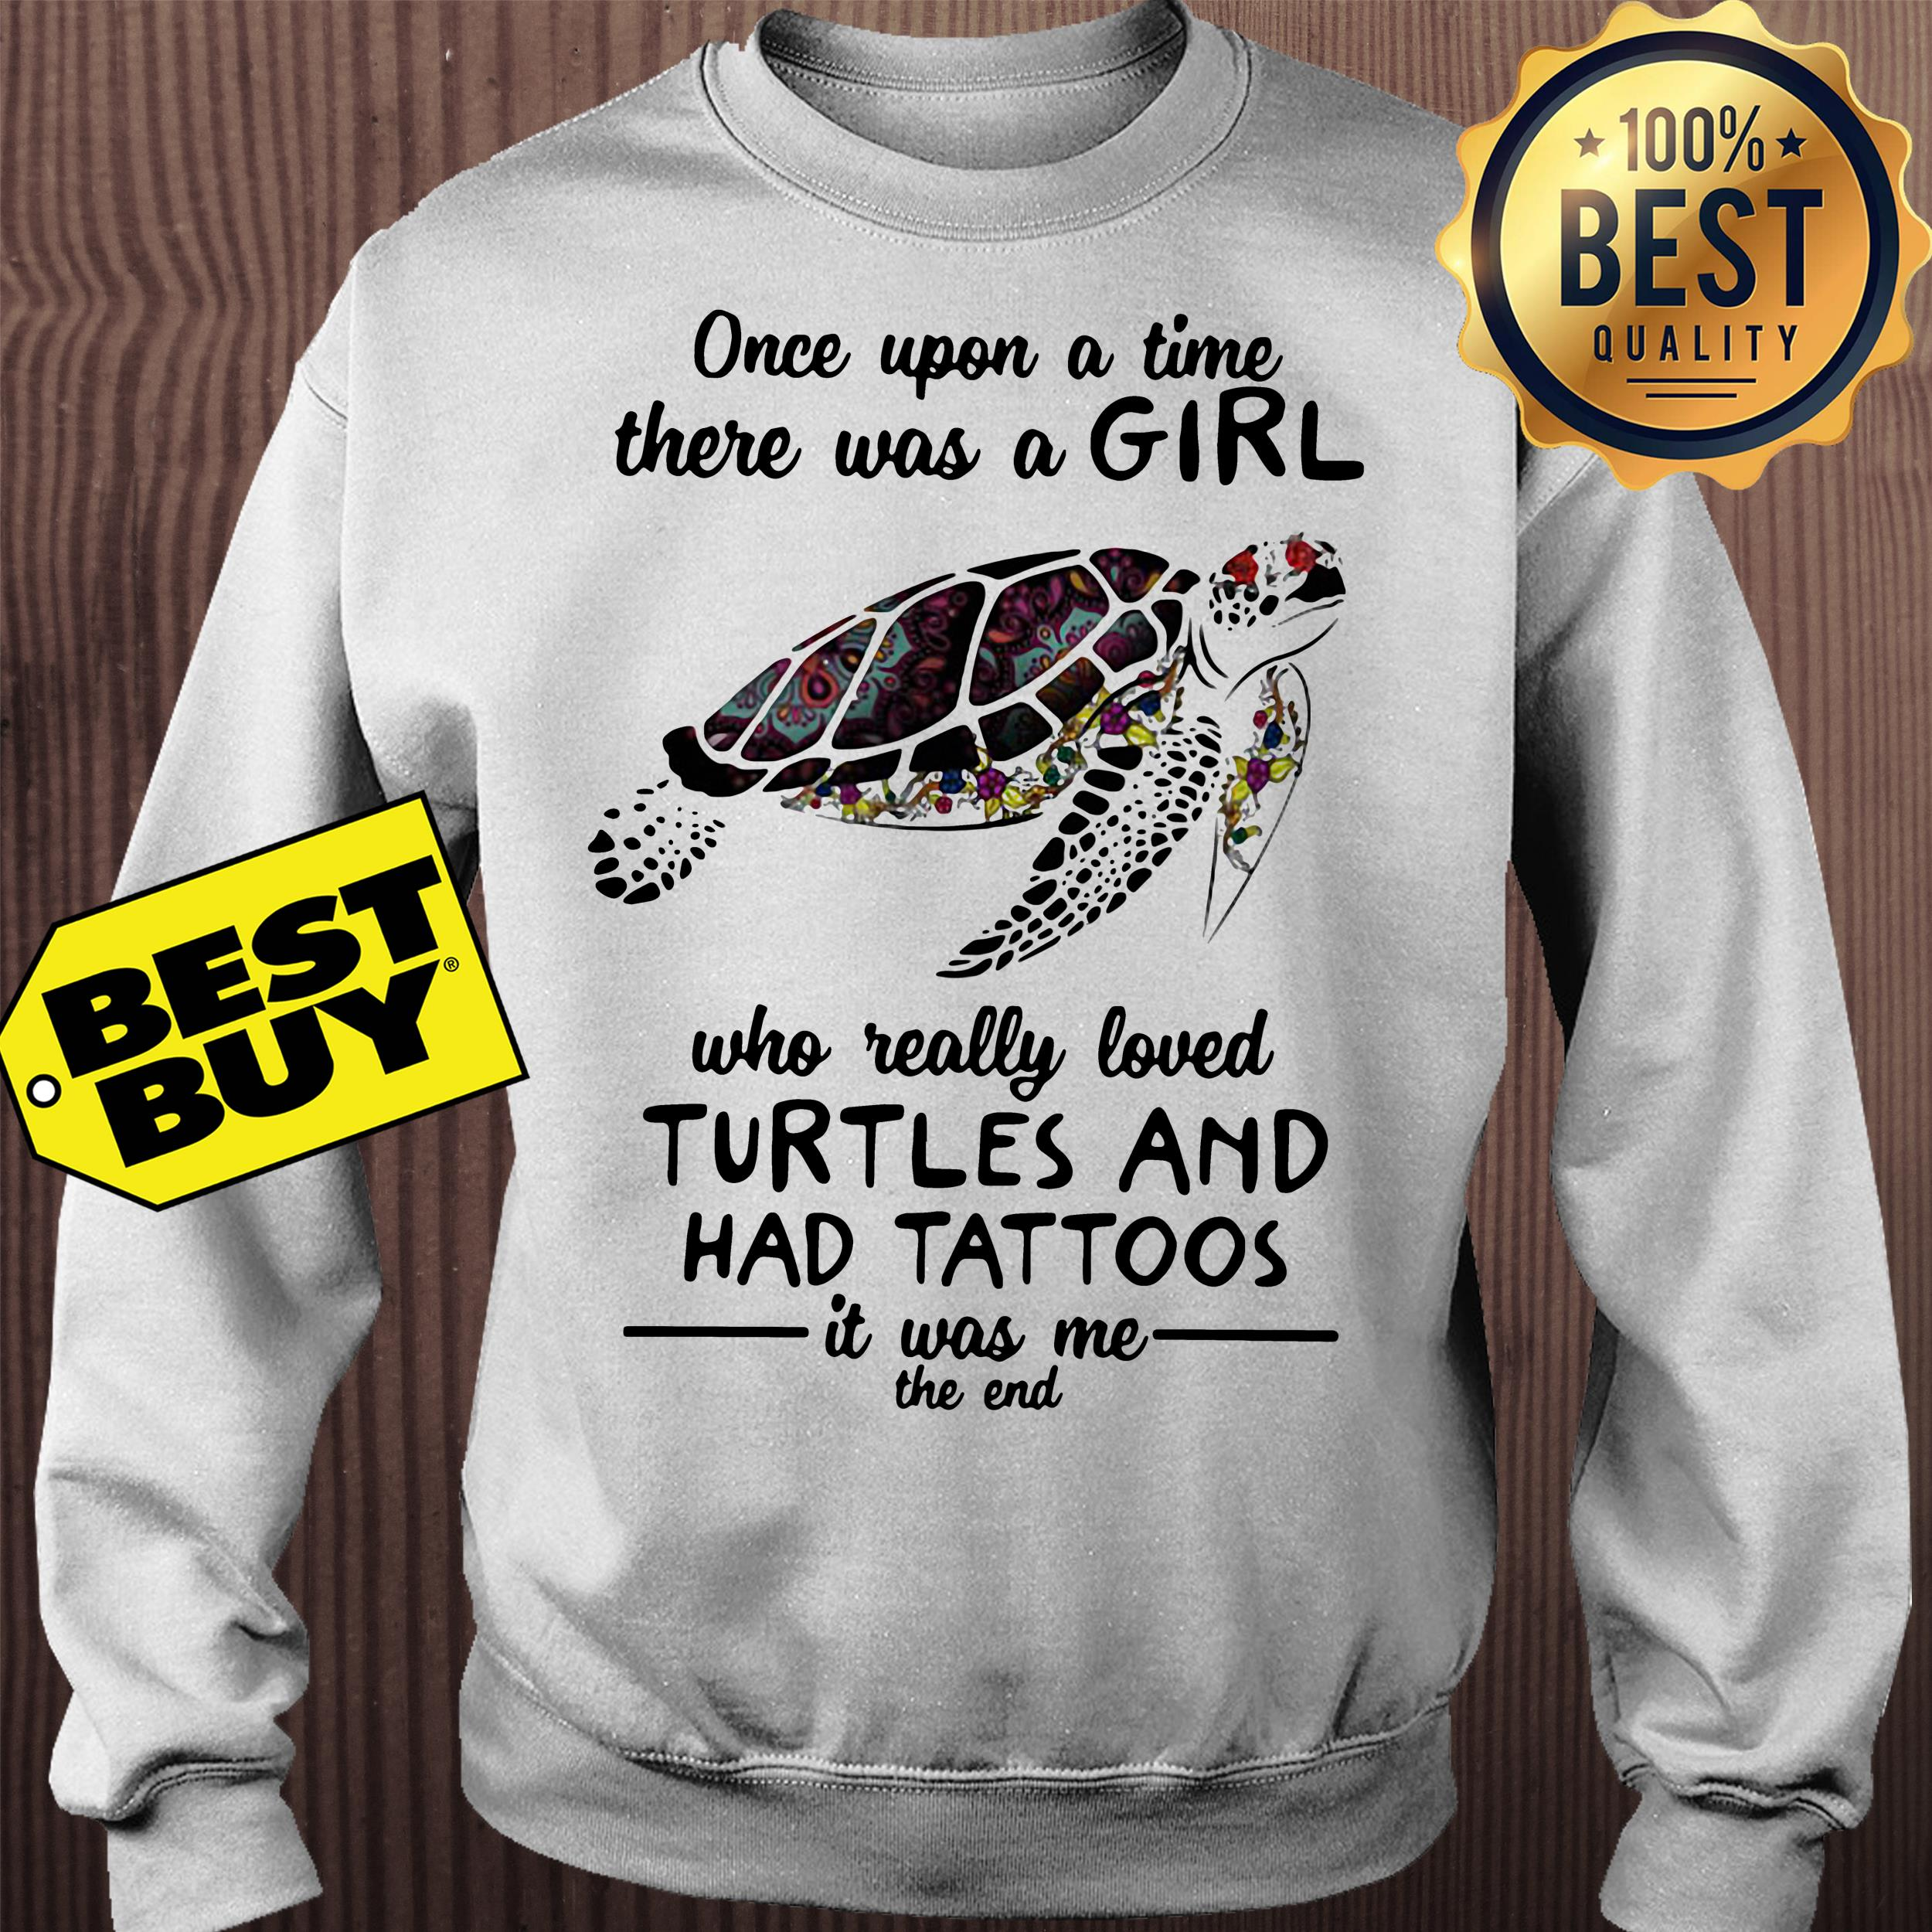 Upon Time Girl Really Loved Turtles Tattoos Sweatshirt